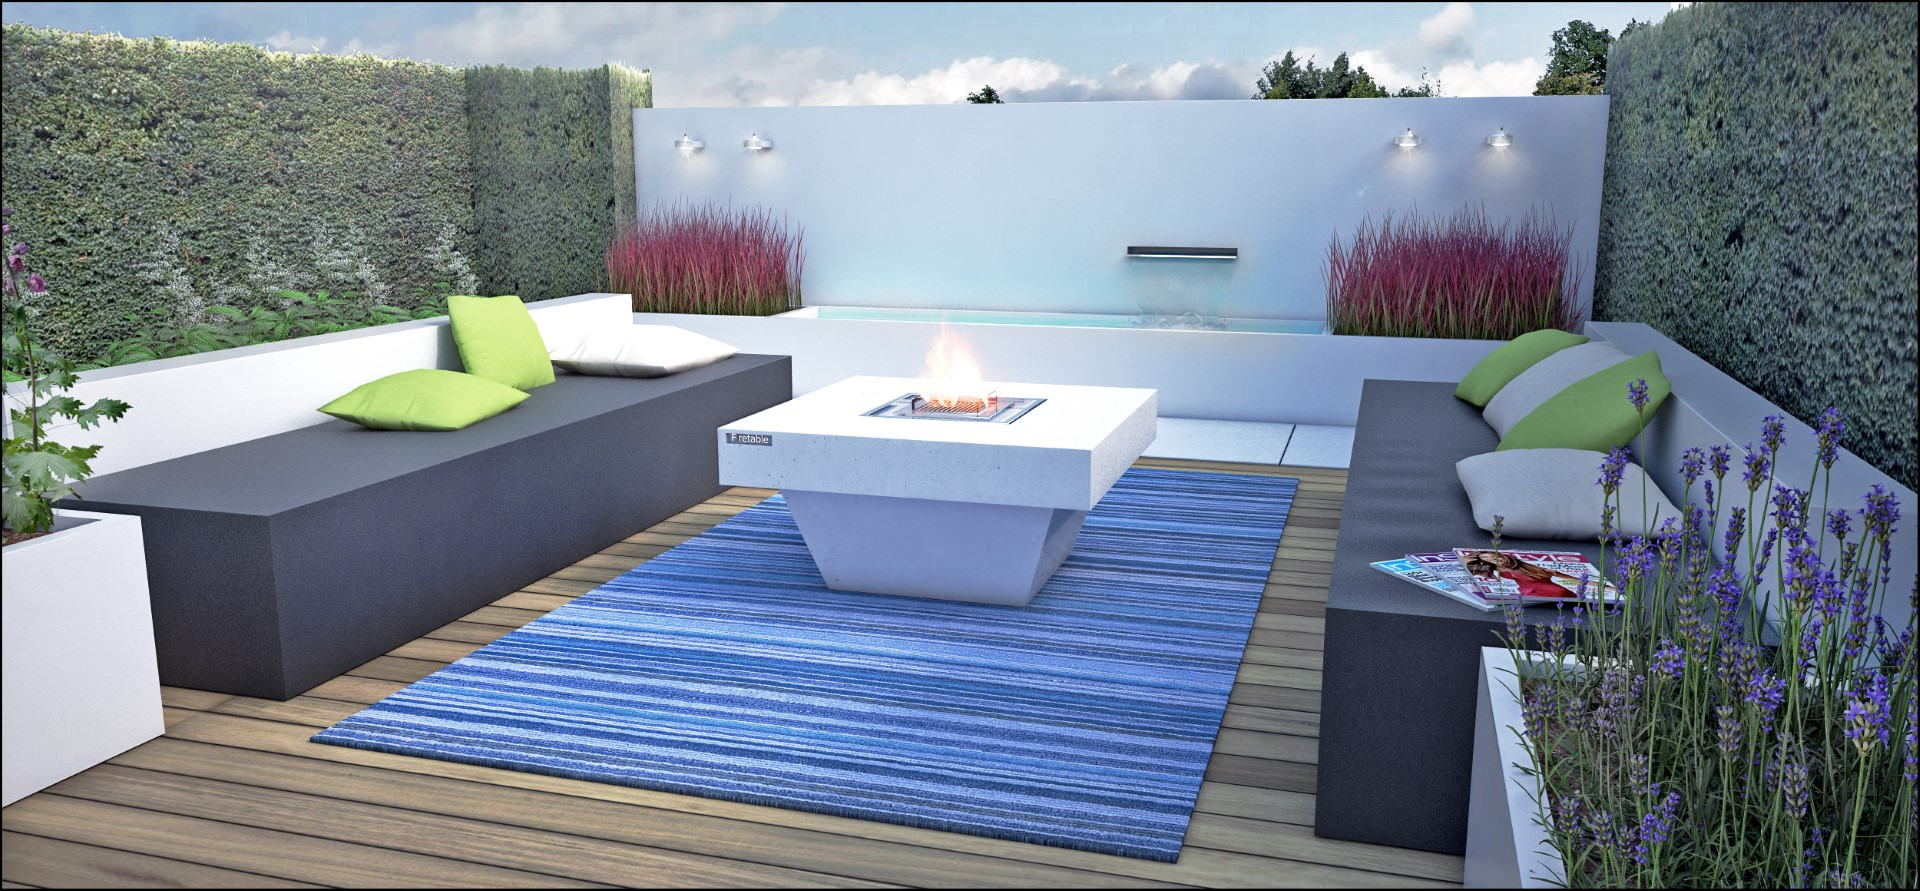 Eco tuinarchitectengroep 3d projecten lounge tuin ninove - Moderne lounge kroonluchter ...